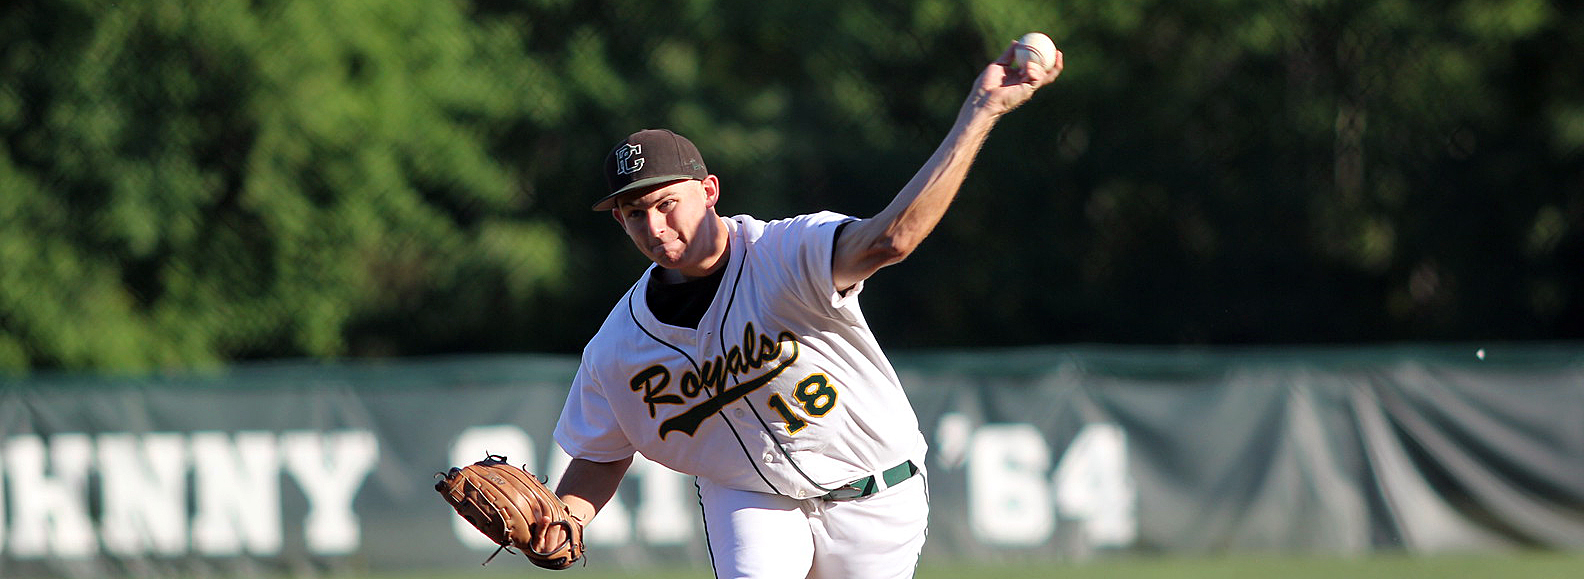 Prince George Baseball Faces Hanover | trnwired